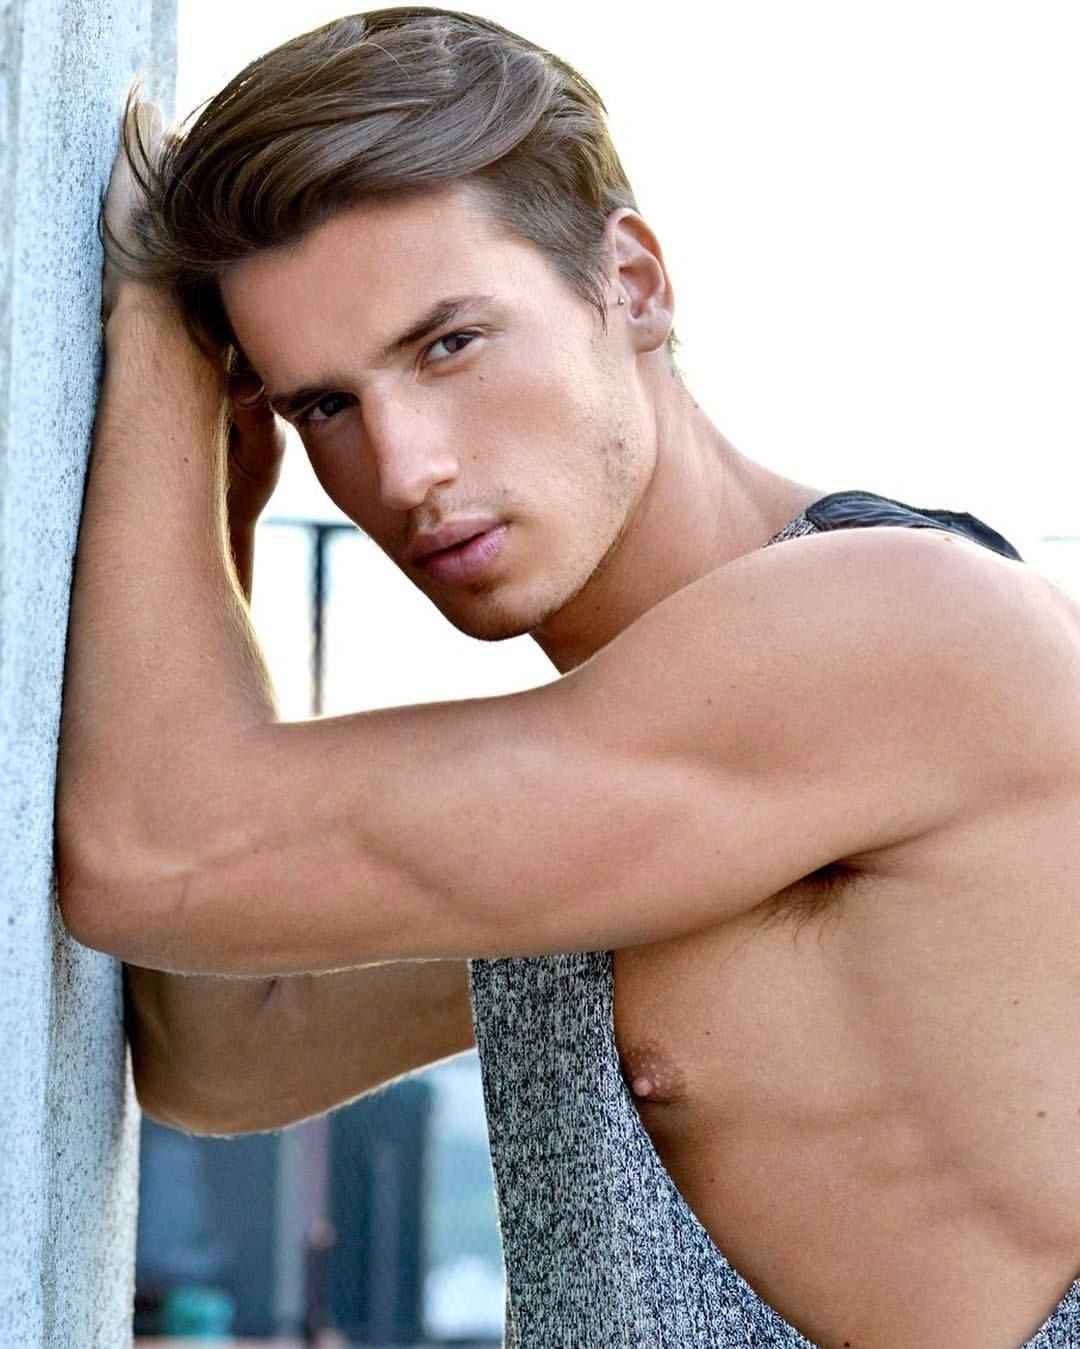 Malemodelspotlight goes to u brazilian hotguy brunoendler